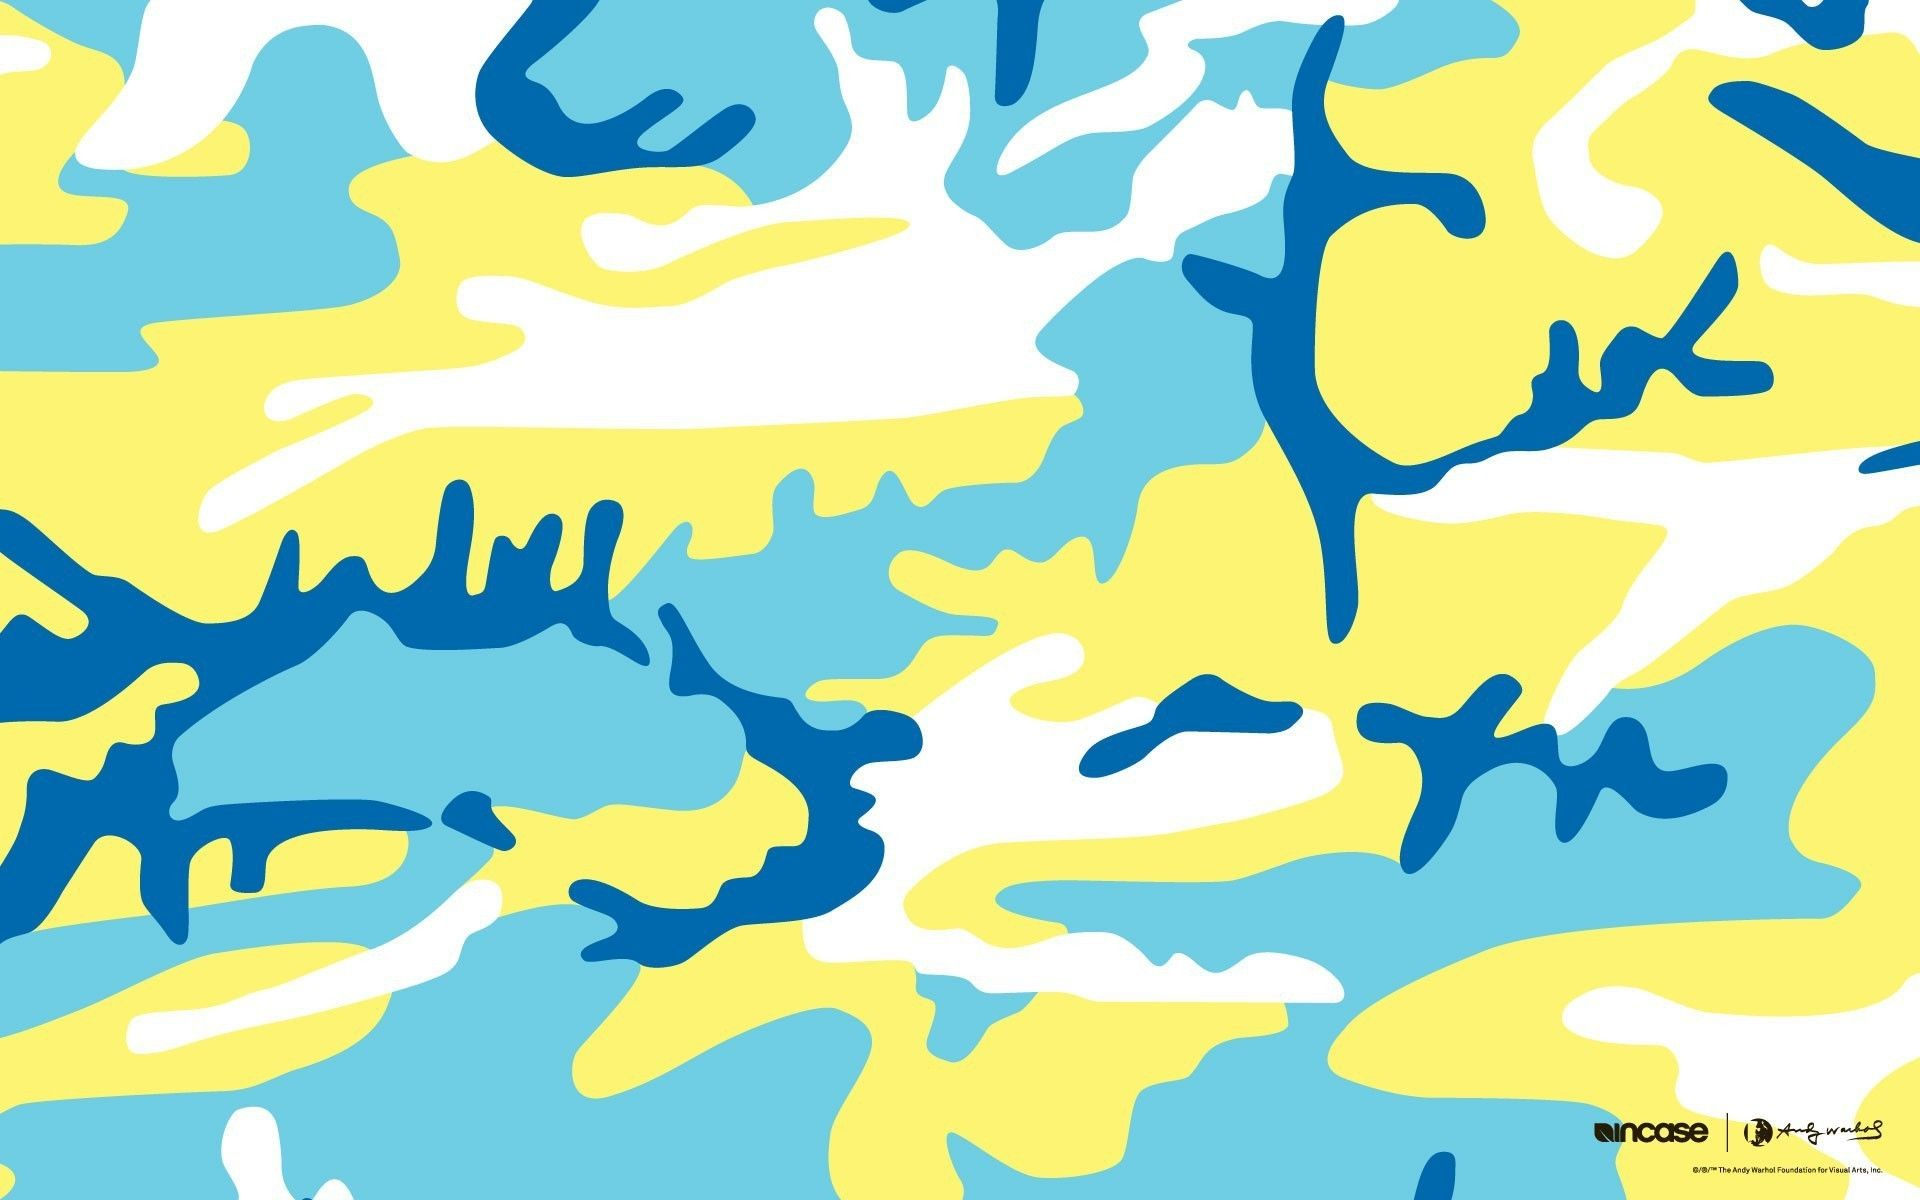 Andy Warhol Incase Camouflage 1920x1200 Warhol Incase Camouflage Via Www Allwallpaper In Camouflage Wallpaper Andy Warhol Cow Wallpaper